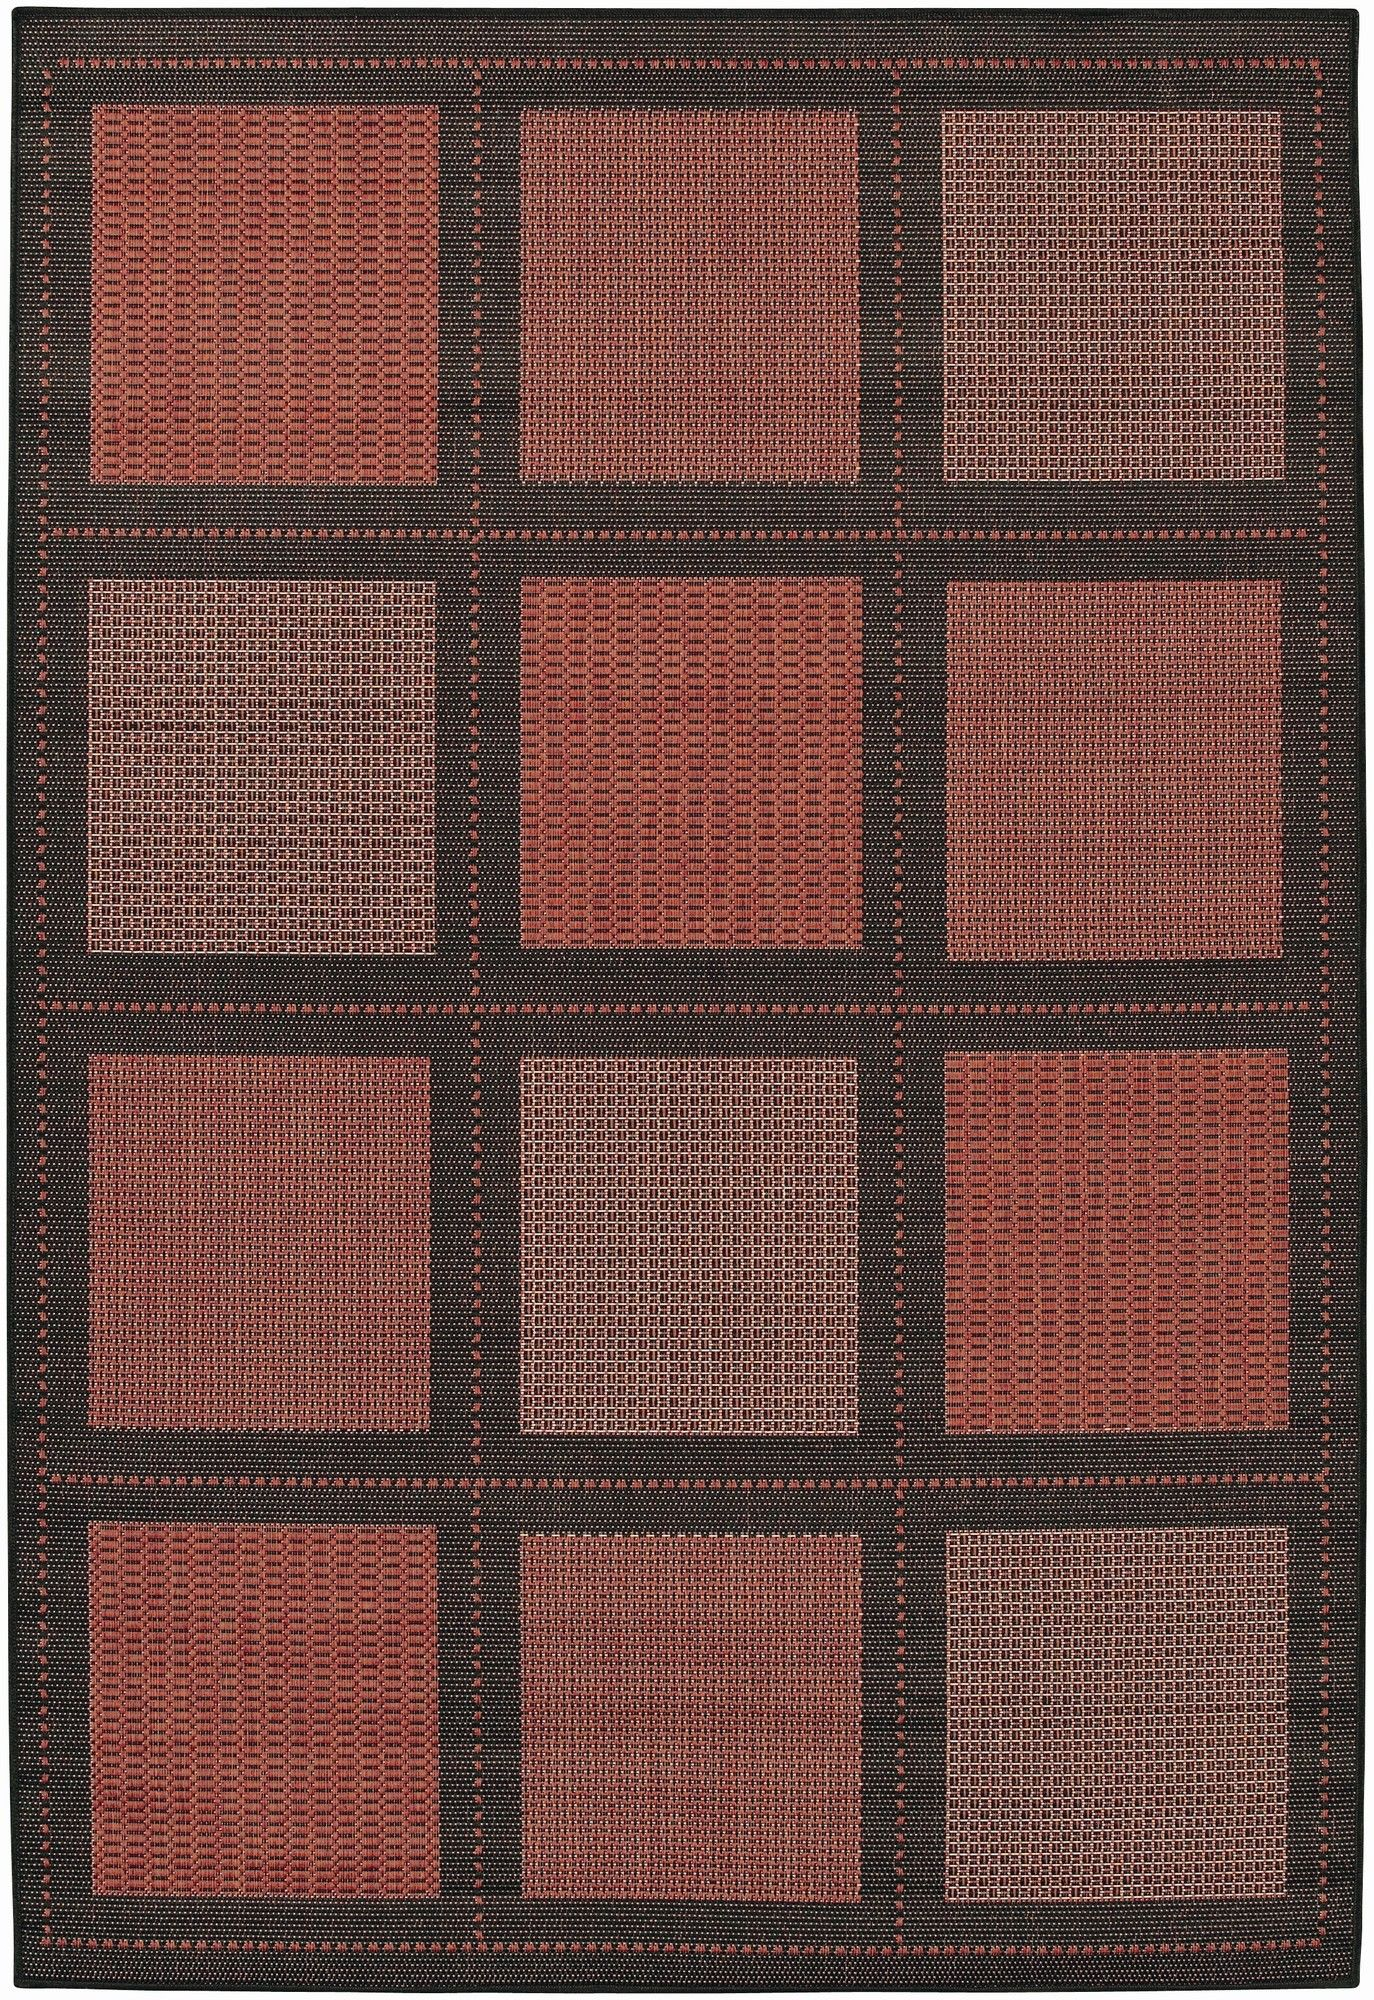 Couristan Recife Summit Terra Cotta Black Indoor Outdoor Area Rug Reviews Wayfair